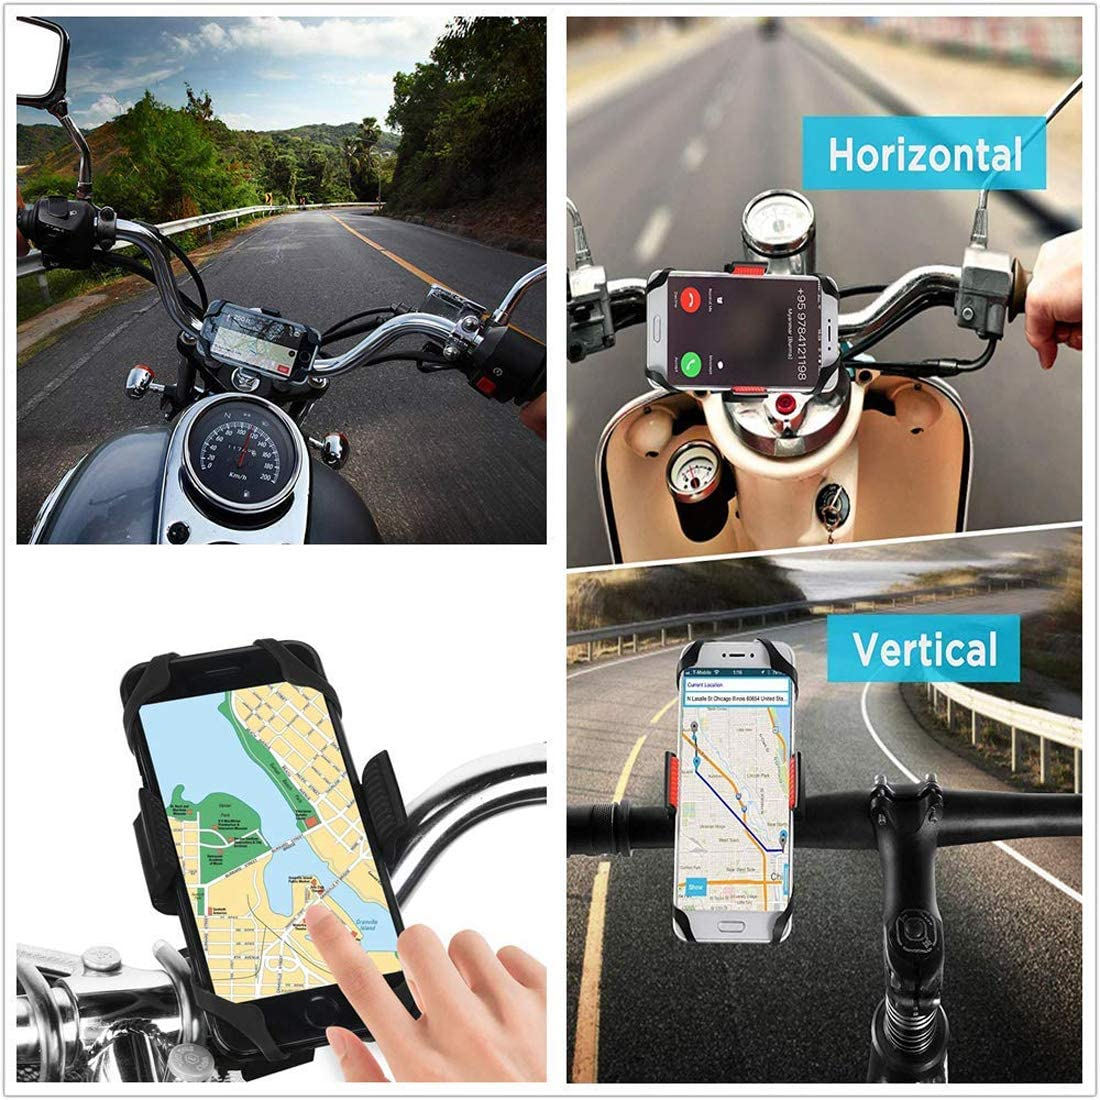 BlackBerry and More Stem Compatible for All Smartphones iPhone X XR 6 7 8 Plus Galaxy S10 S9 S8 Universal Motorcycle Phone Holder with 2 Adjustable Anti Shake Silicone Bands Bike Phone Mount LG